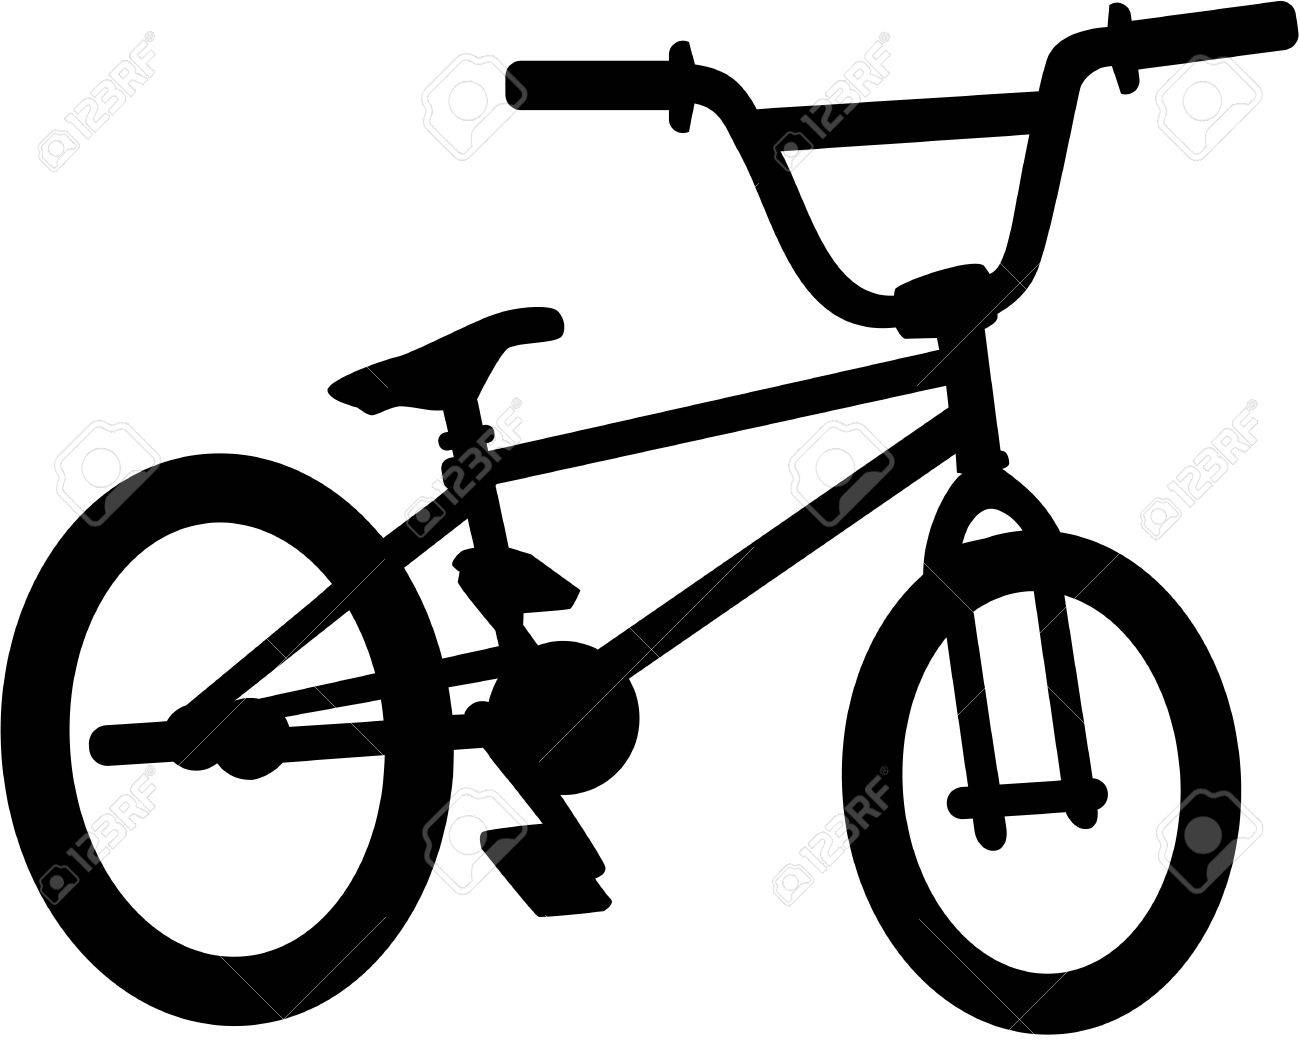 bmx bike silhouette royalty free cliparts vectors and stock rh 123rf com vector bike free vector bike icon free download